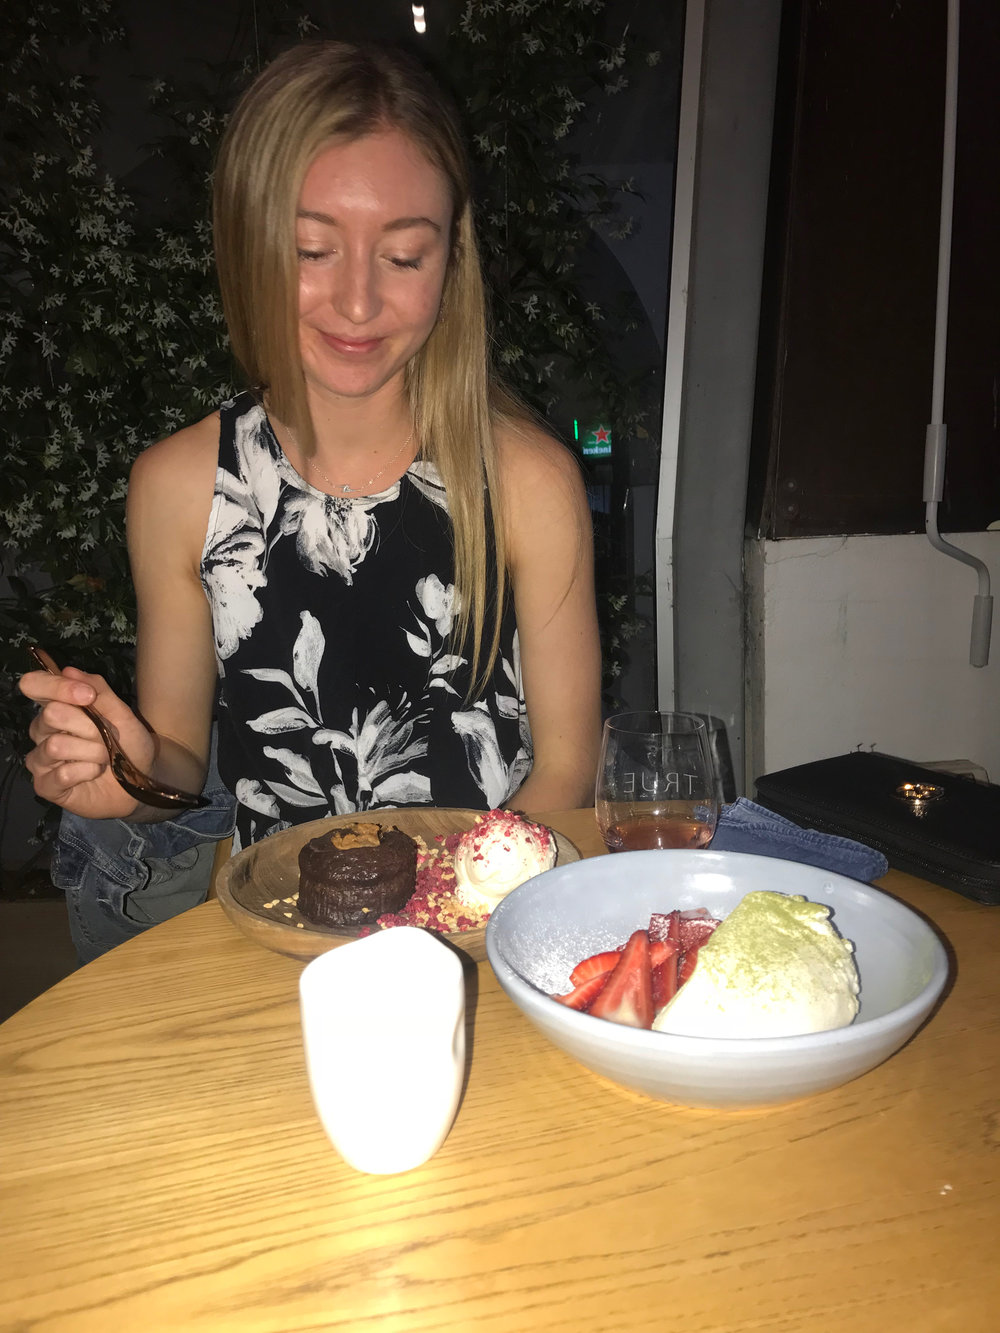 Lauren Meale found a delicious spot for dessert